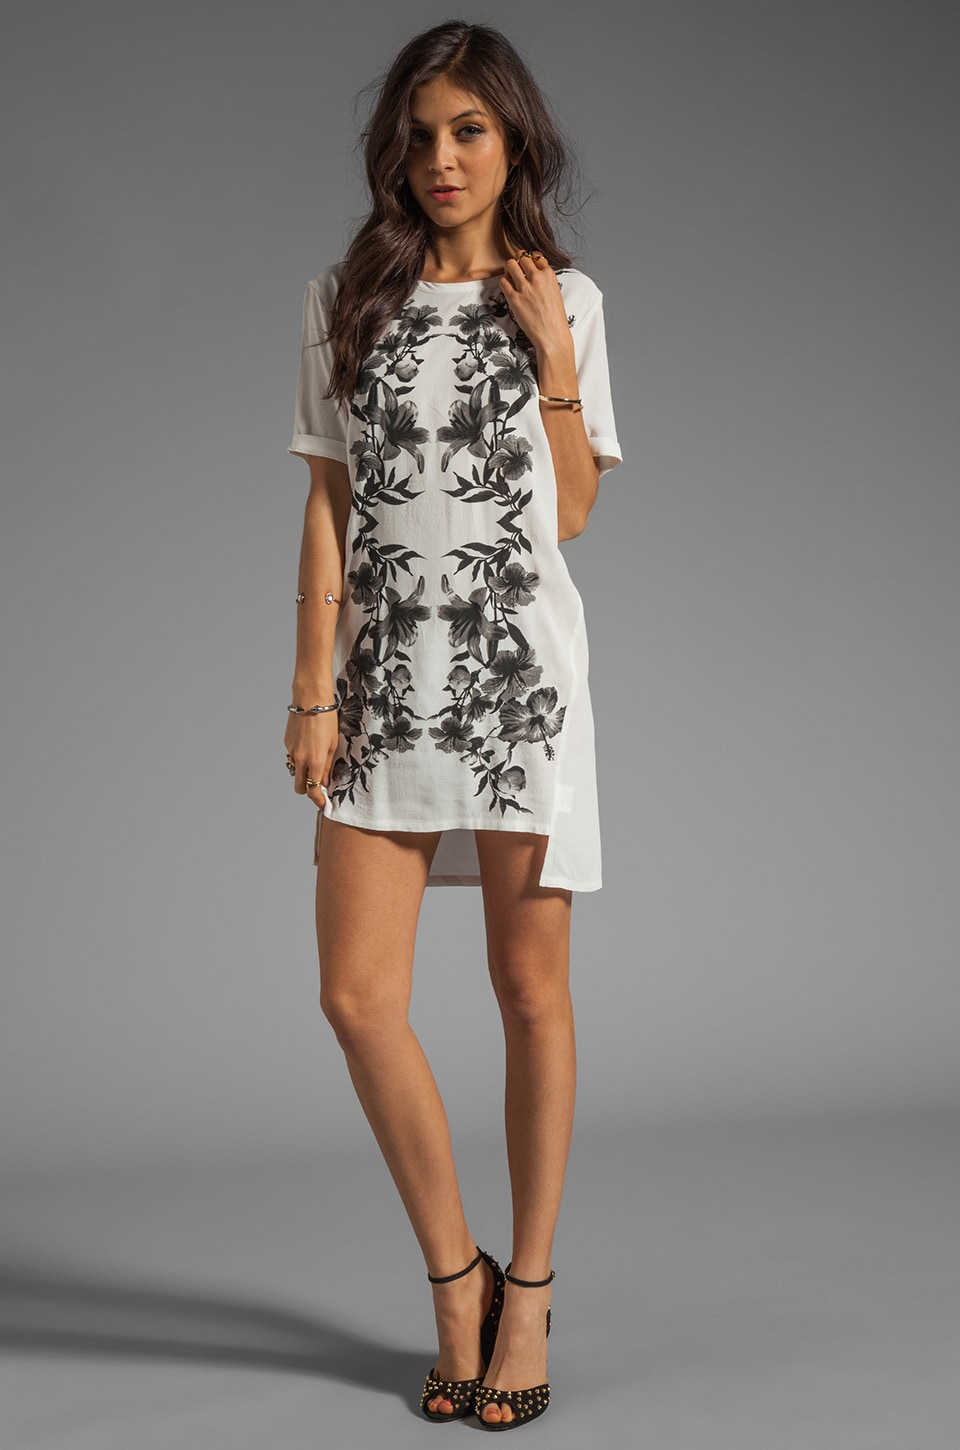 Style Stalker Parallel Universe Dress in Black/White Floral